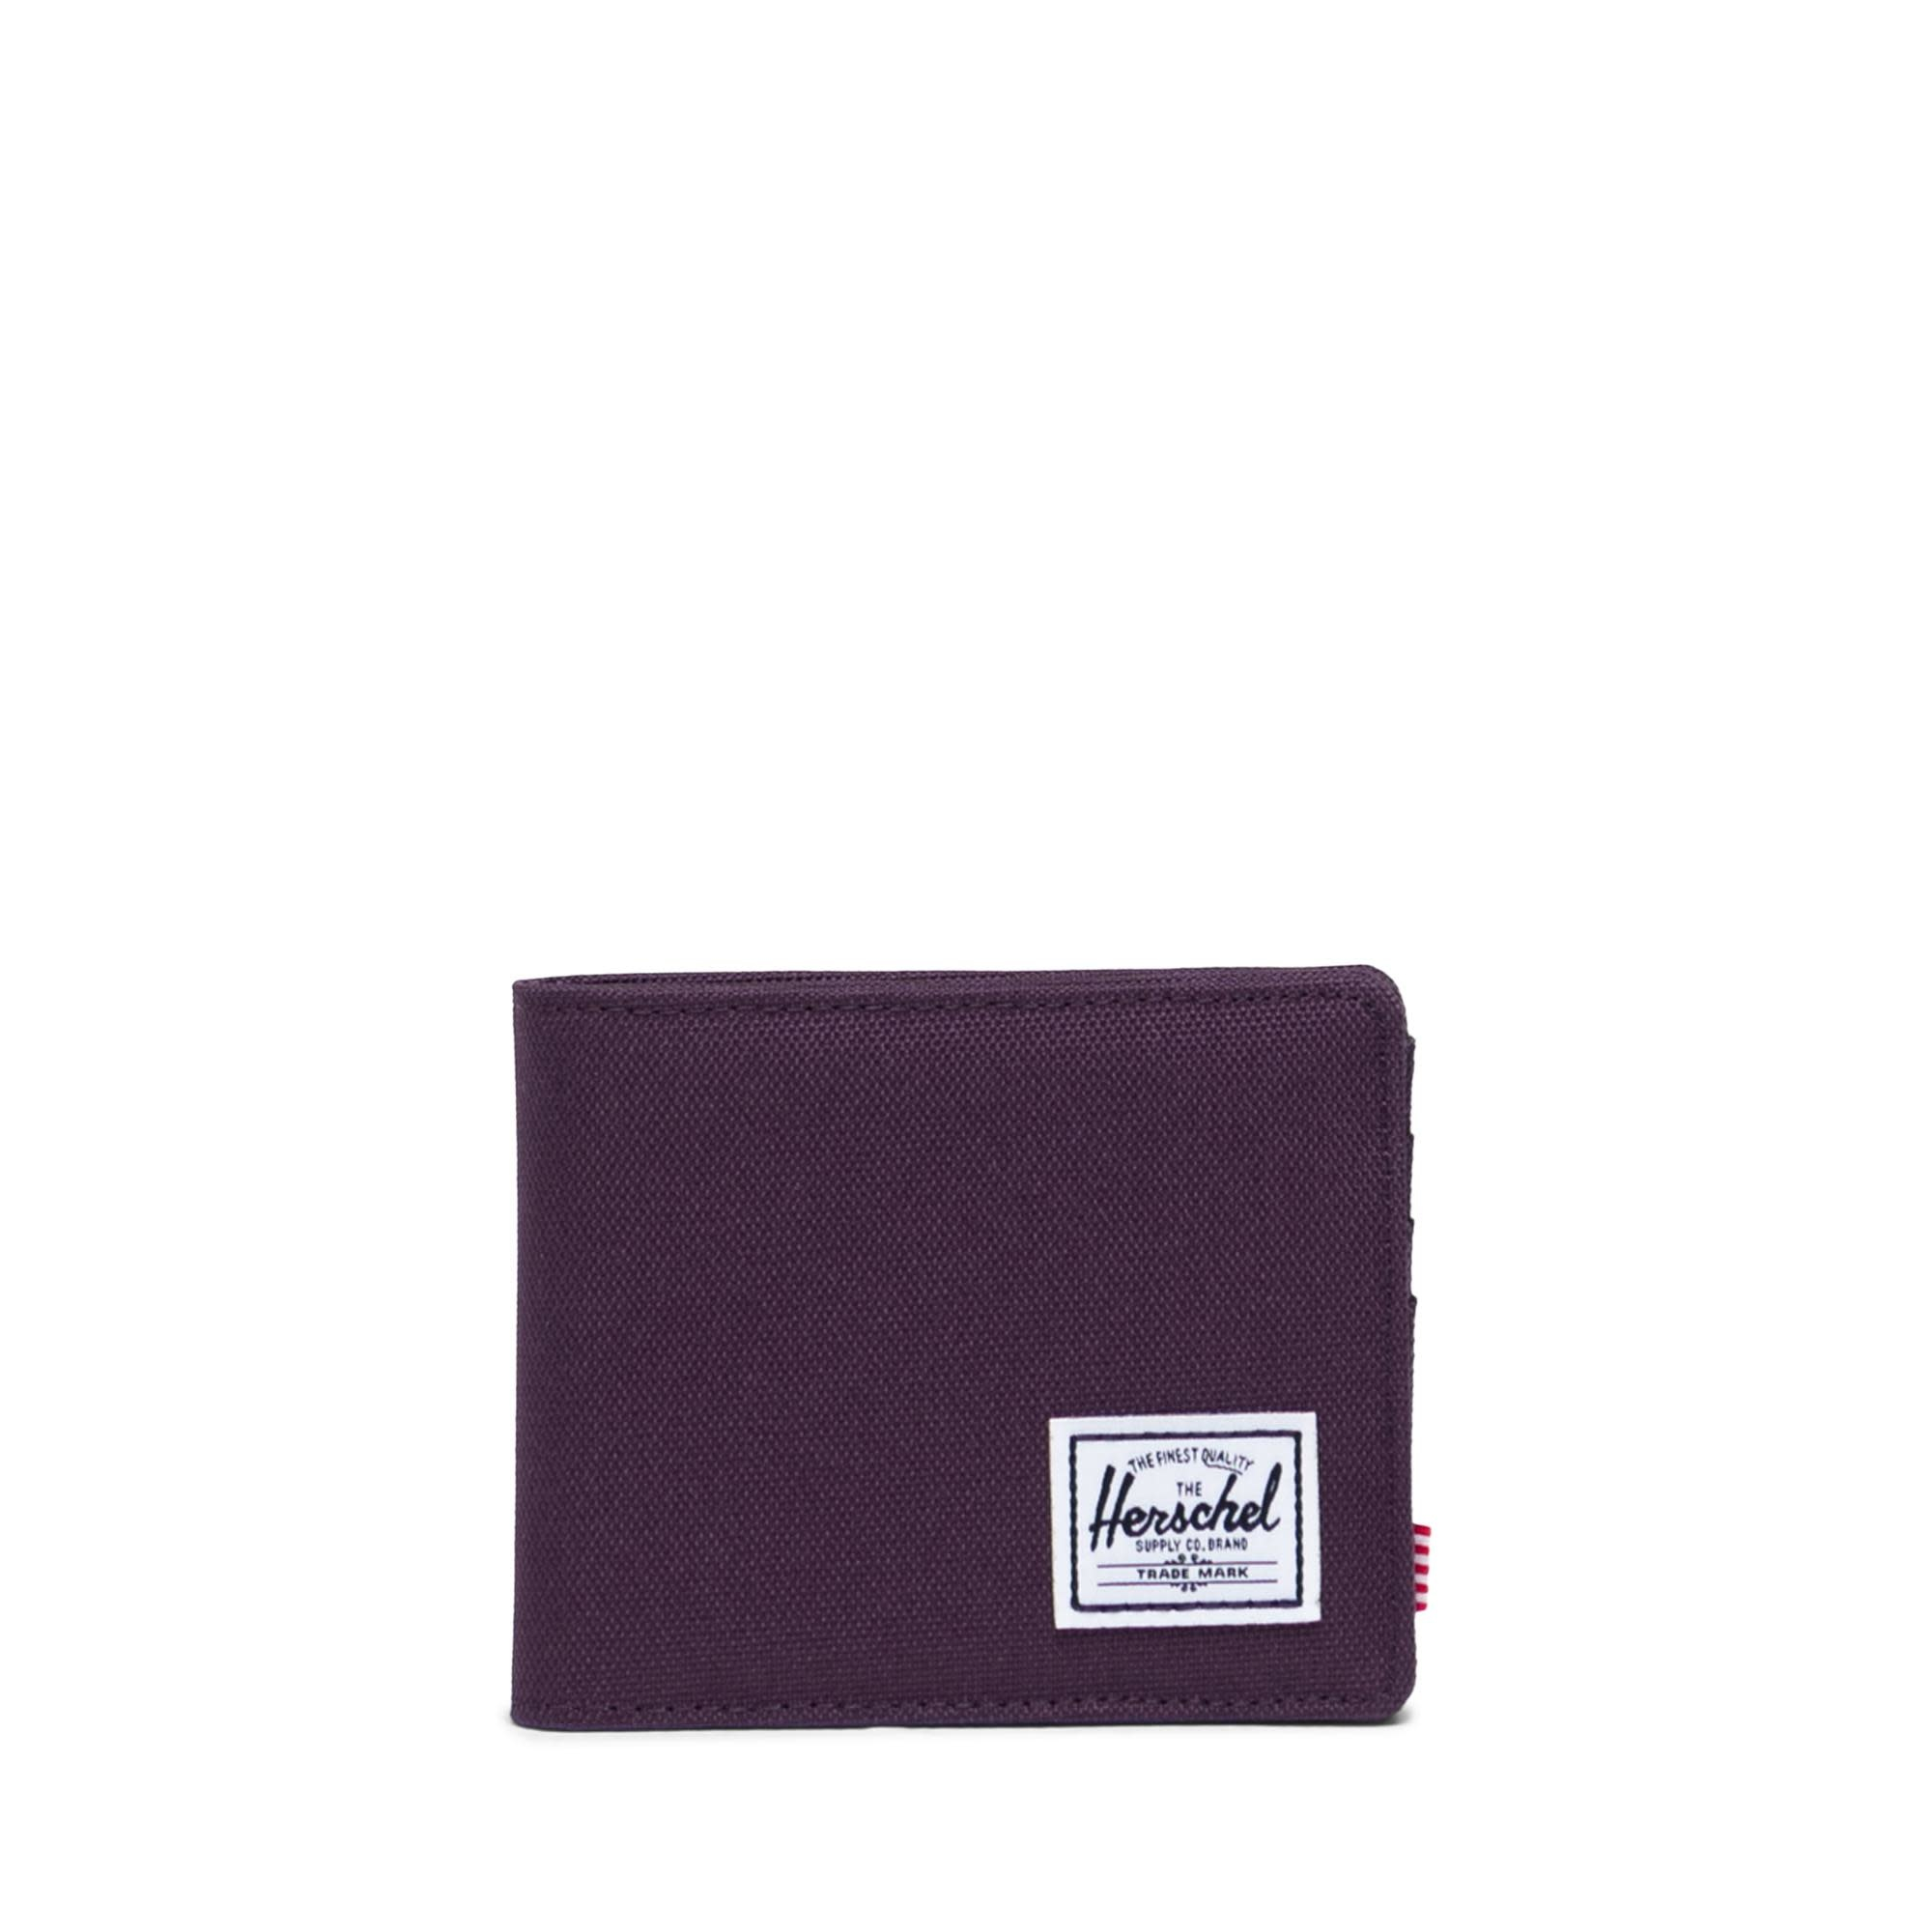 Herschel Supply Co. Herschel Roy Wallet - Blackberry Wine